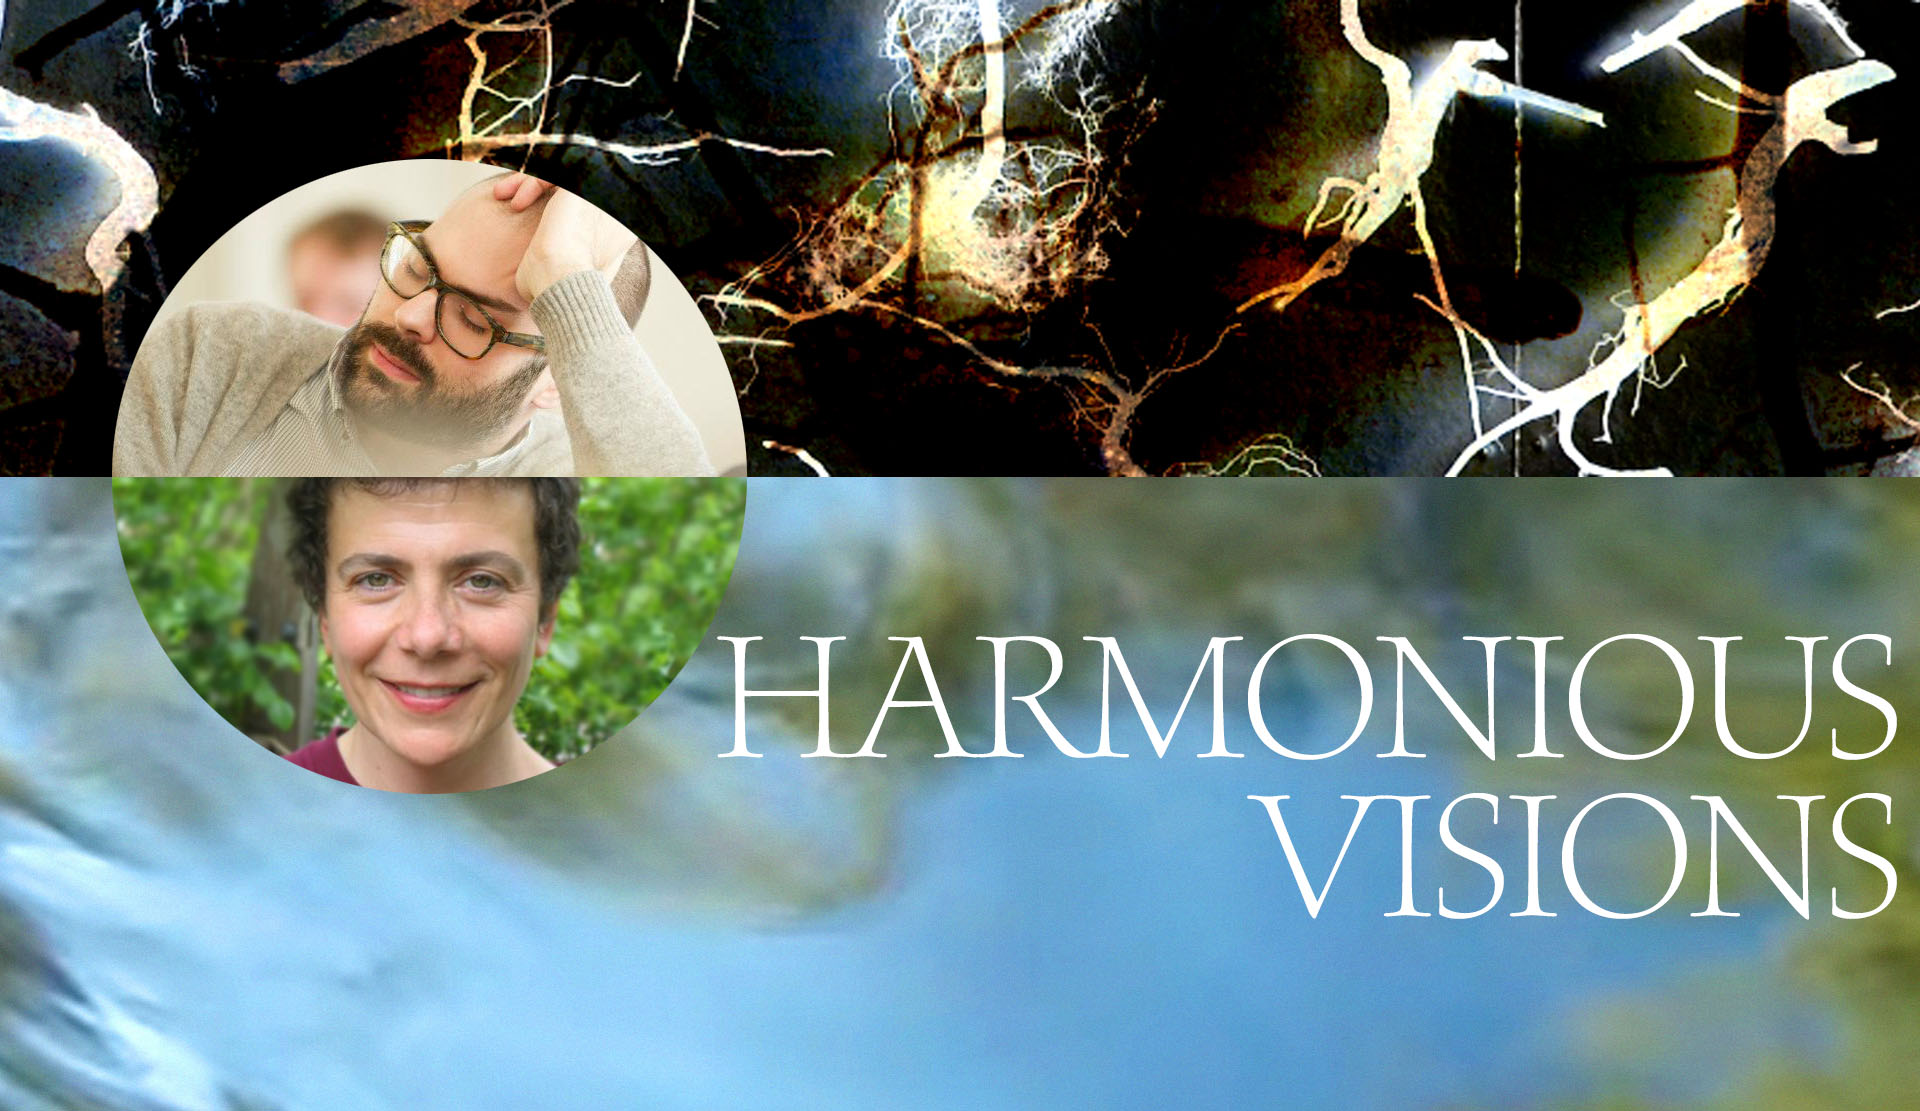 Harmonious Visions Williams Center for the Arts